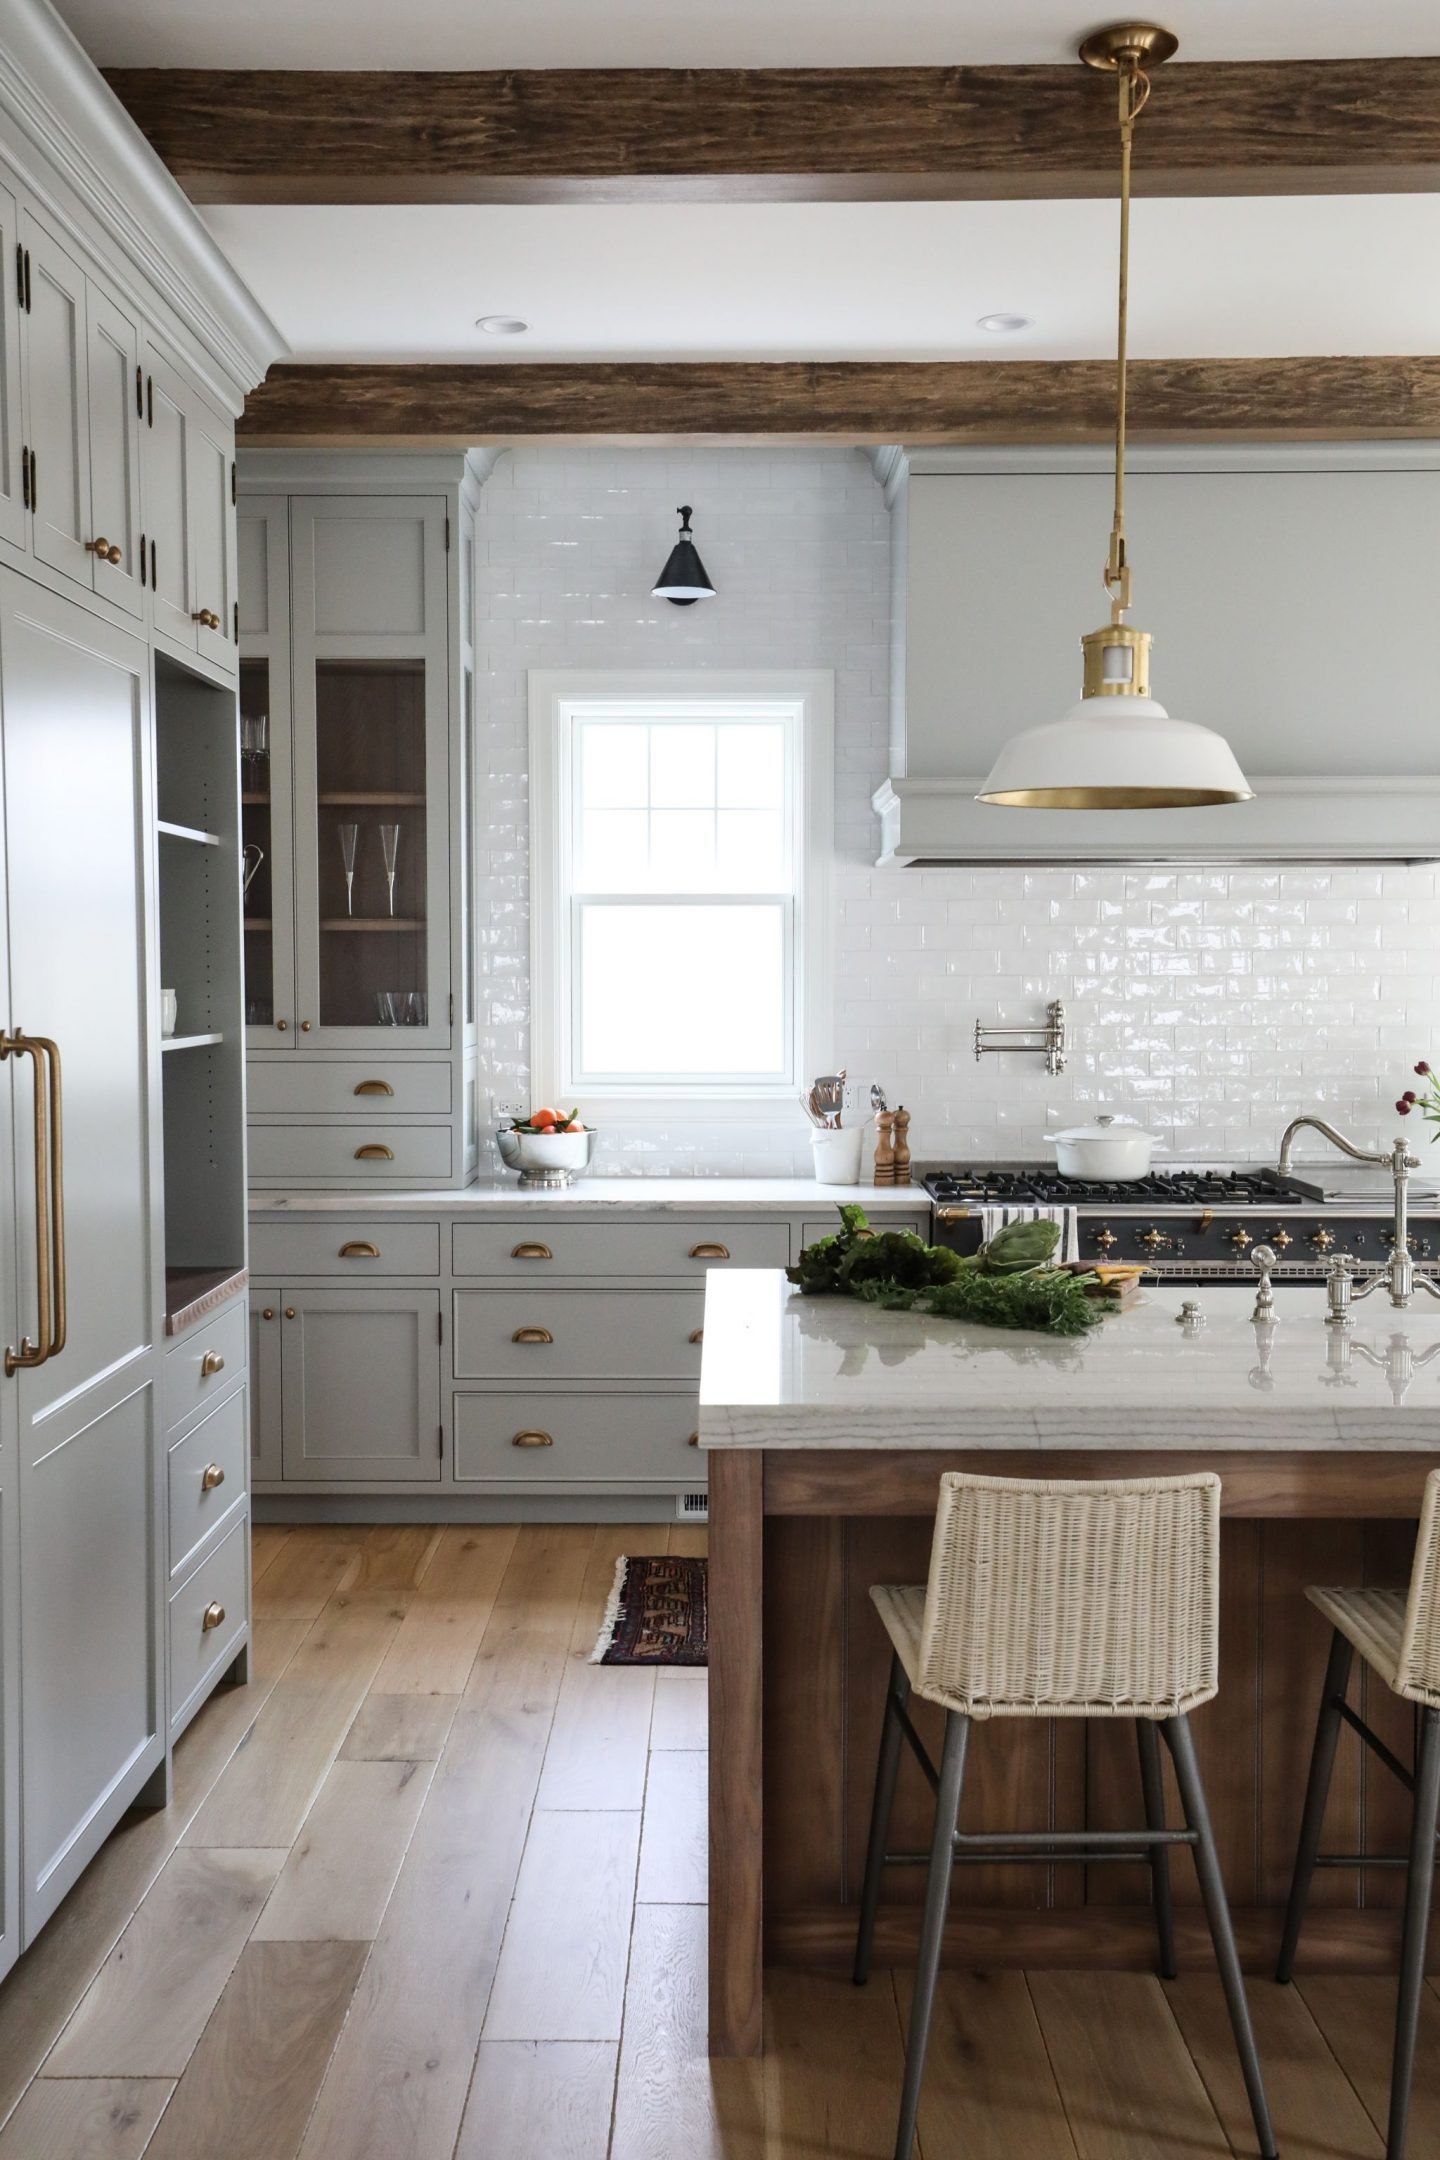 16 Simple Yet Sophisticated Kitchen Design Ideas - Hello Lovely